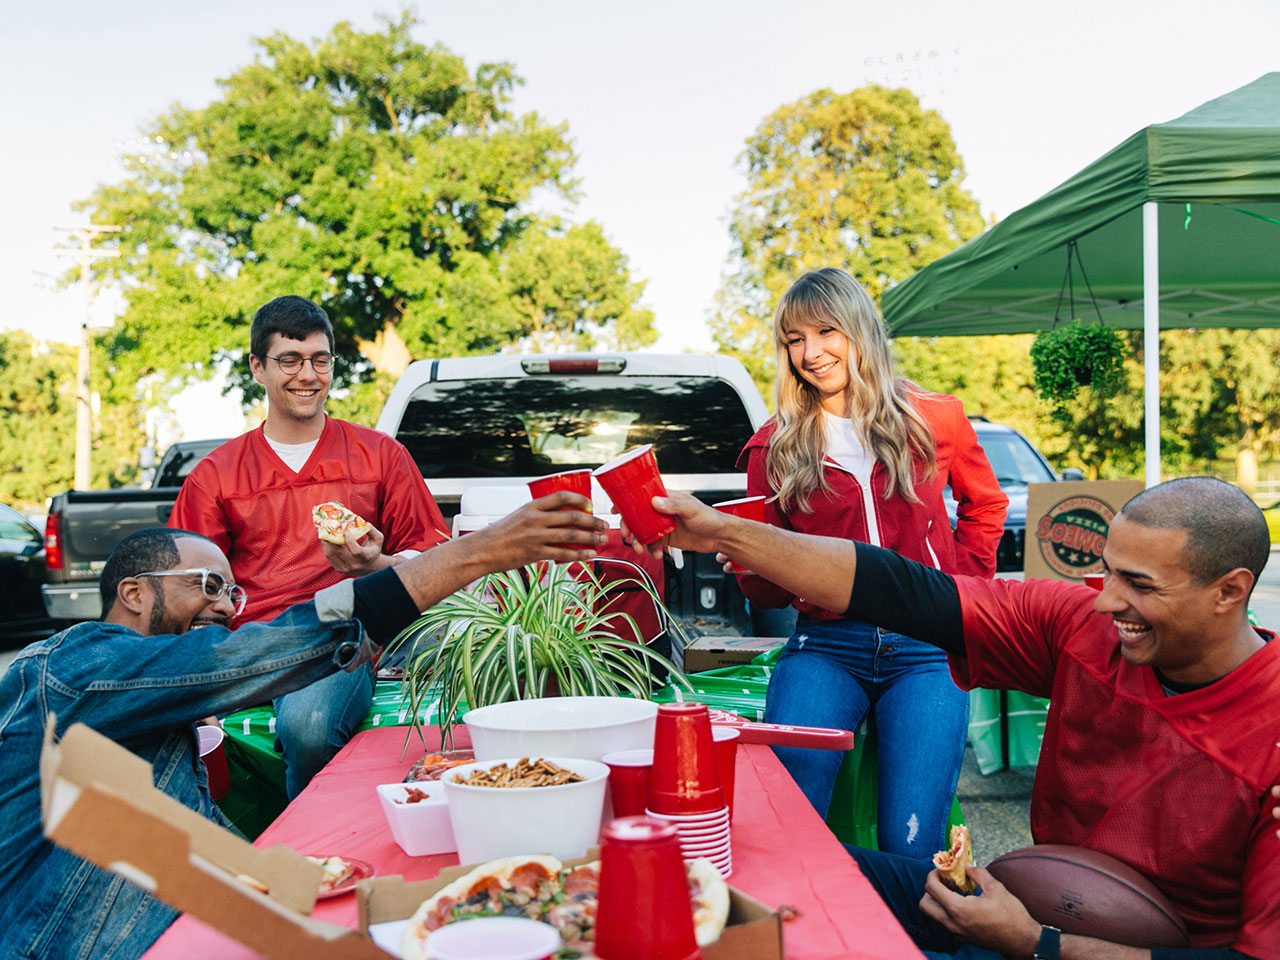 Romeo's Pizza tailgate photoshoot 2